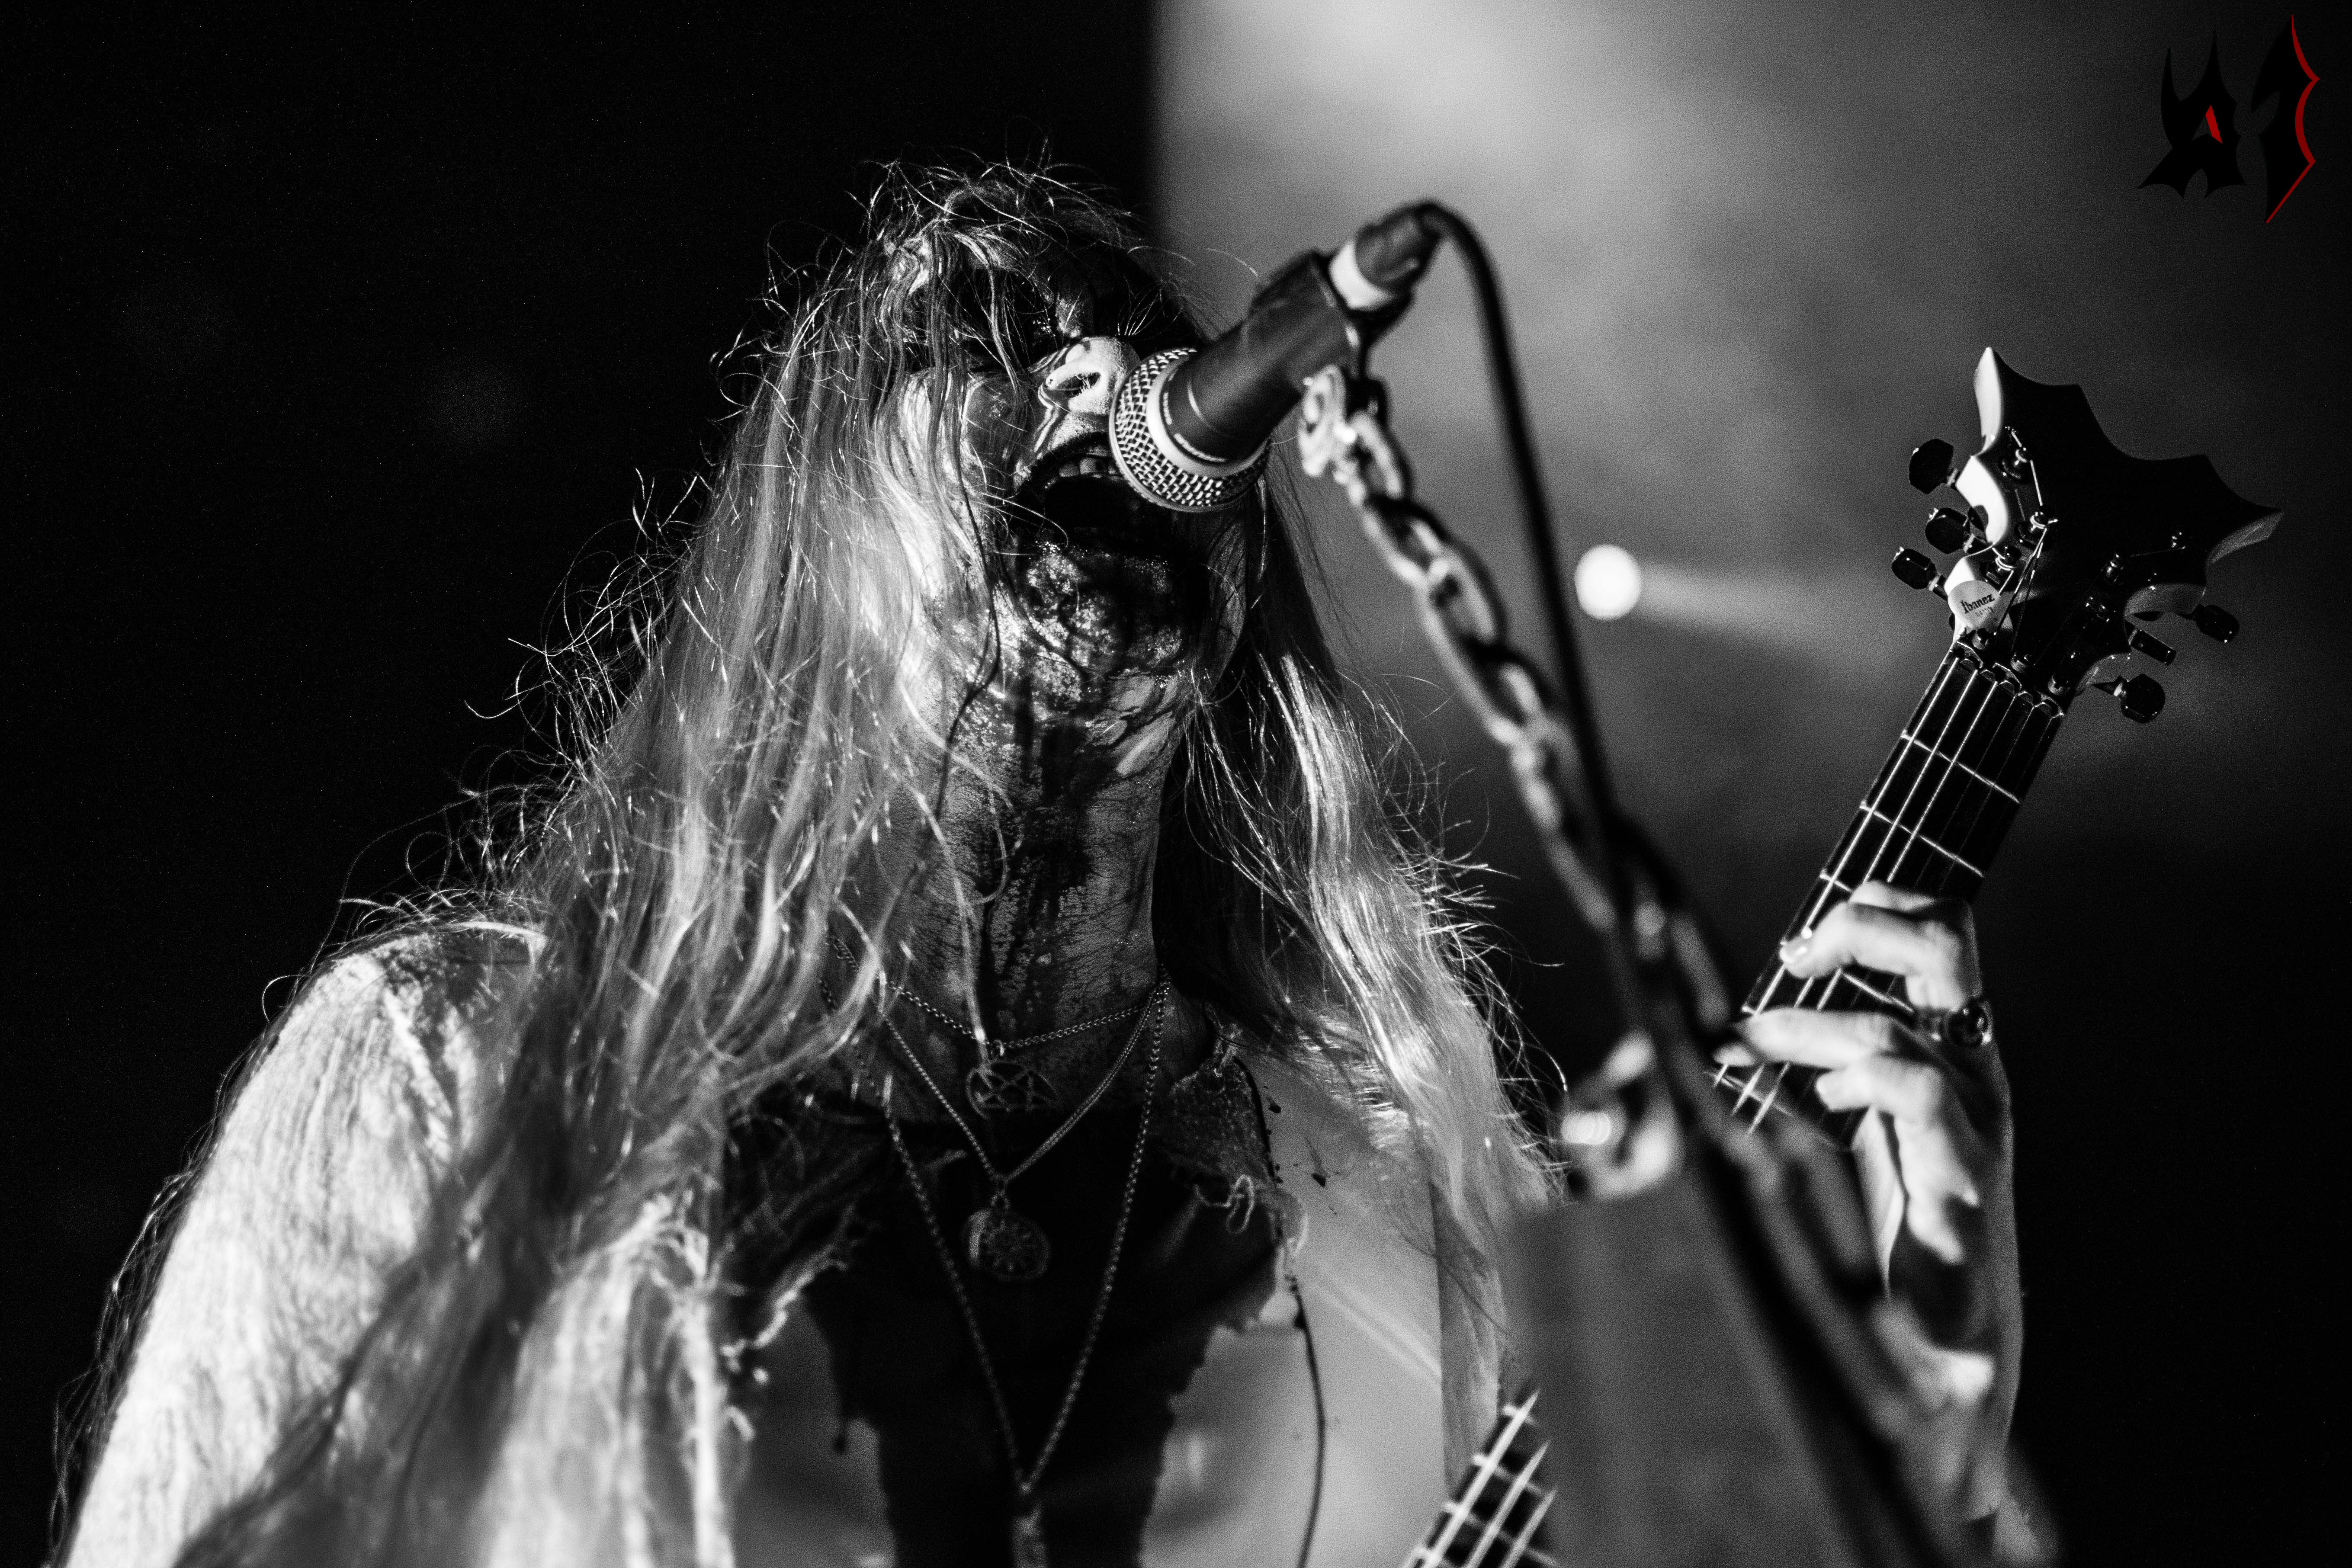 Darkened Nocturn Slaughtercult - 9